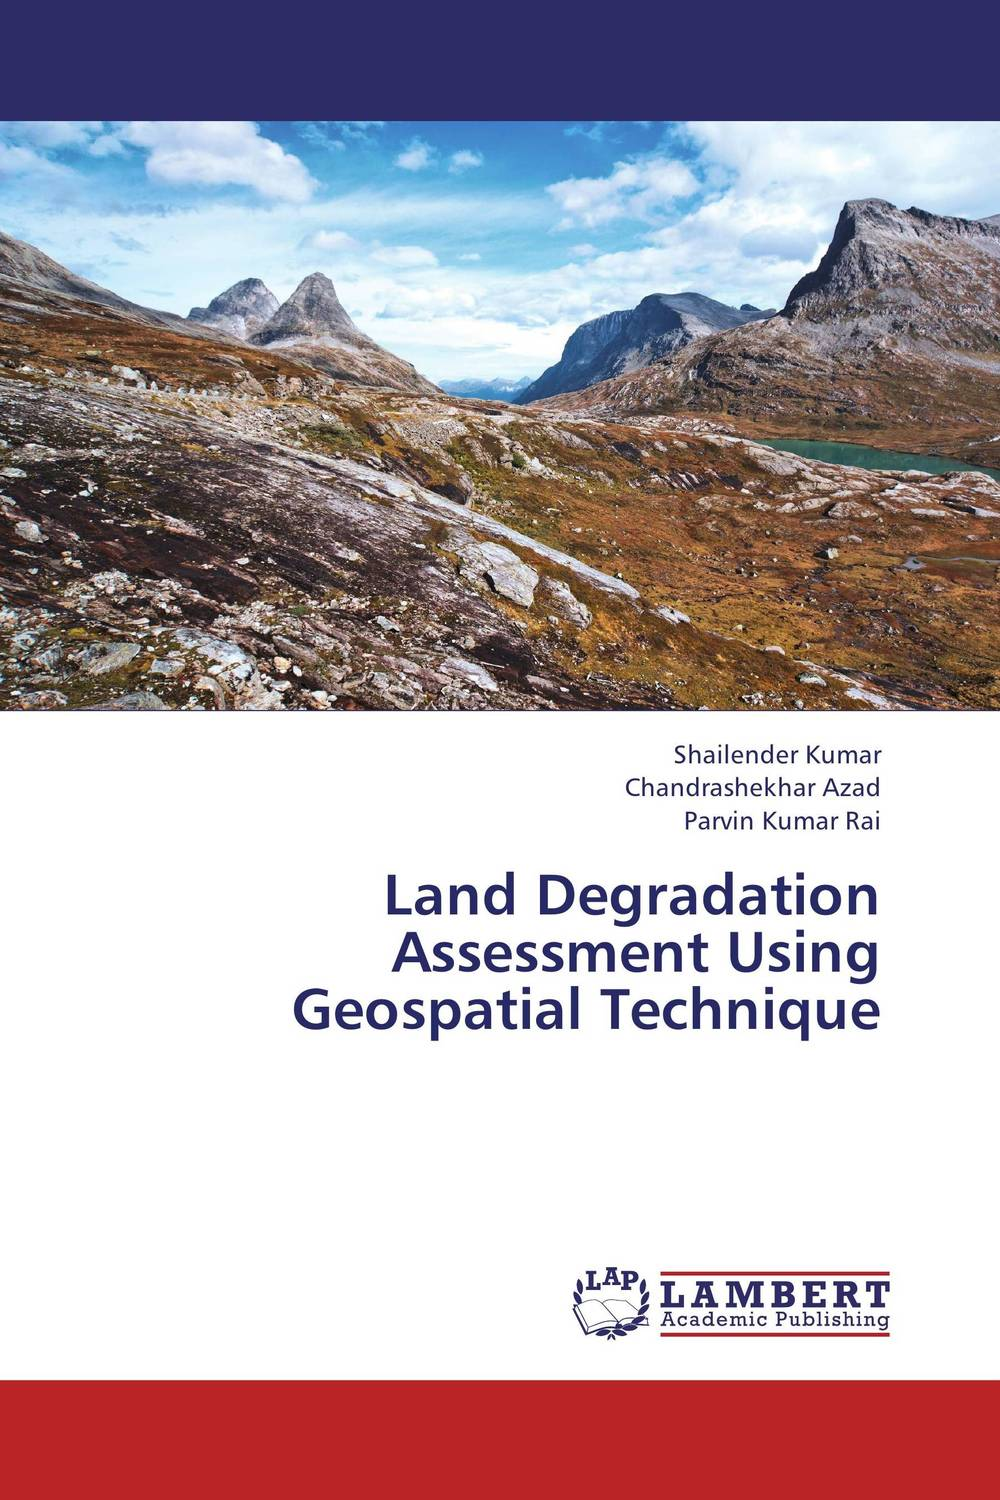 Land Degradation Assessment Using Geospatial Technique rajarshi dasgupta assessment of land degradation and its restoration in jharia coalfield